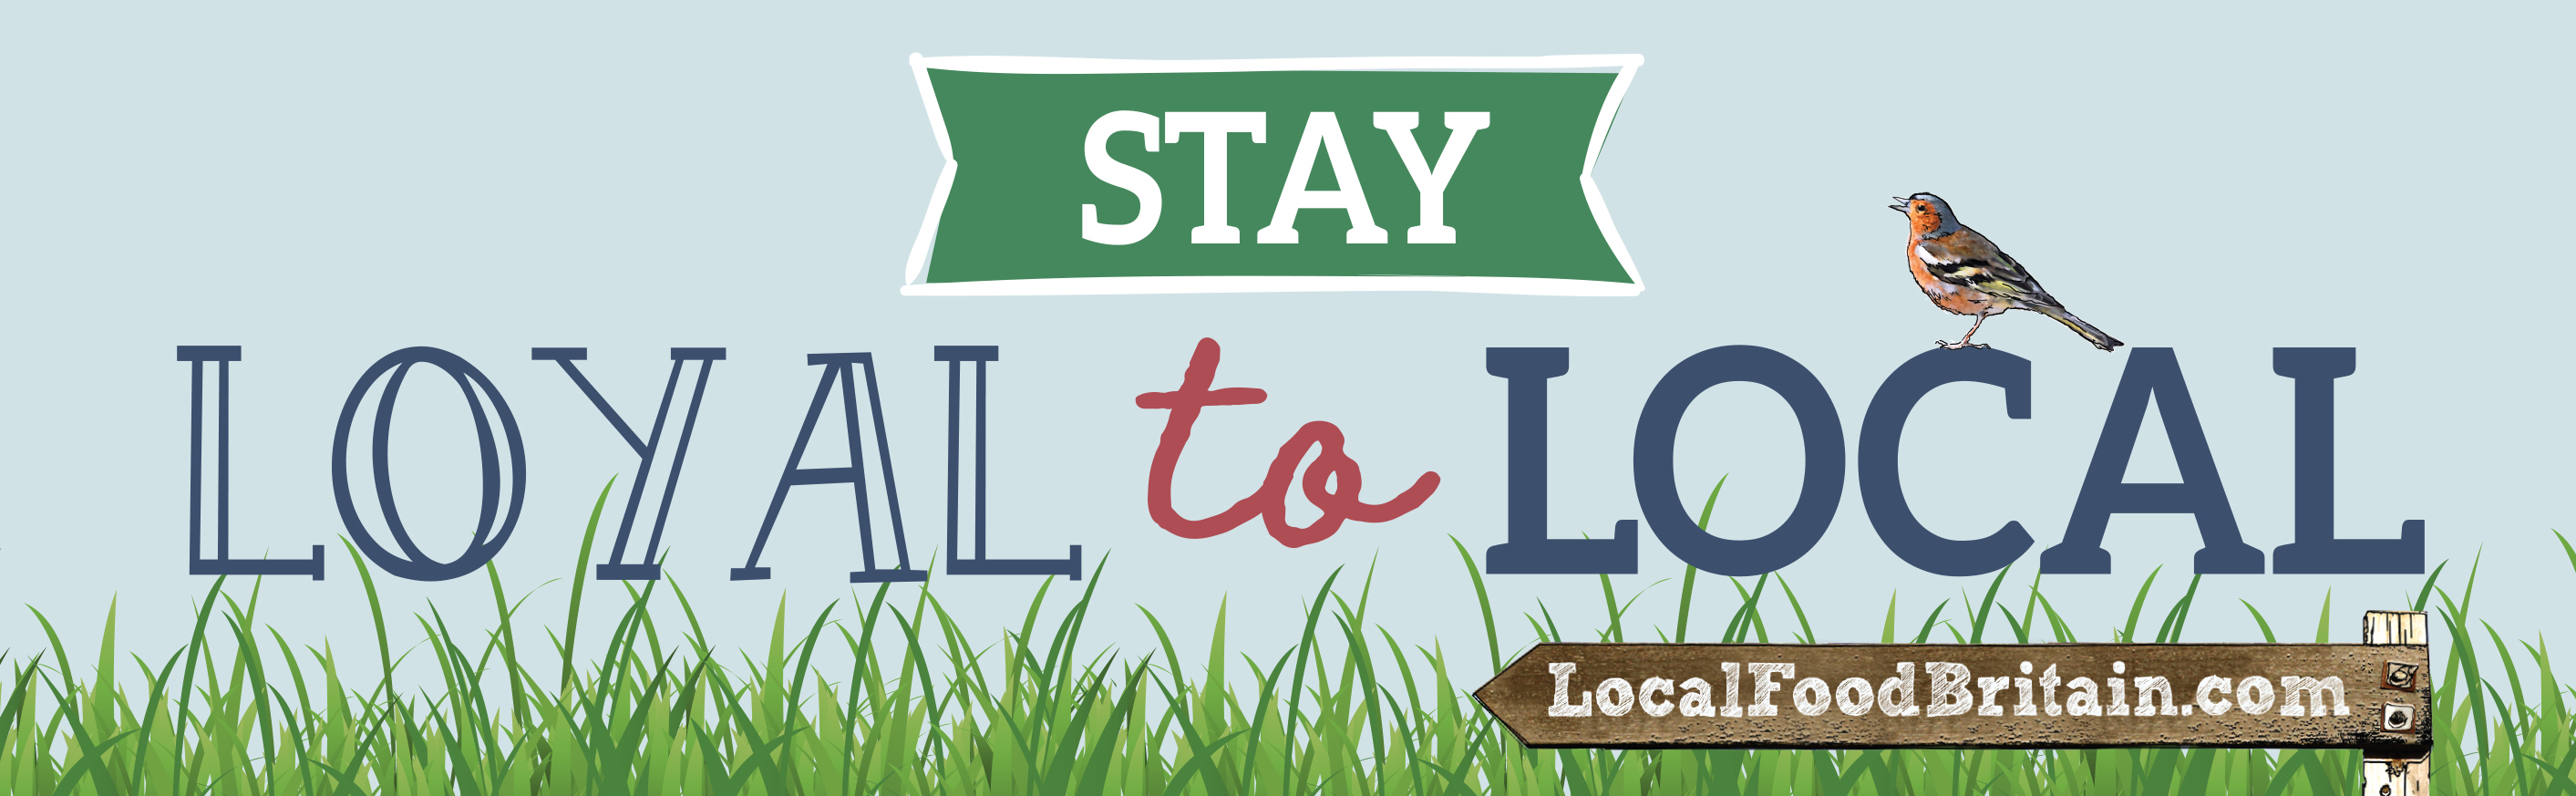 Stay Loyal to Local campaign logo